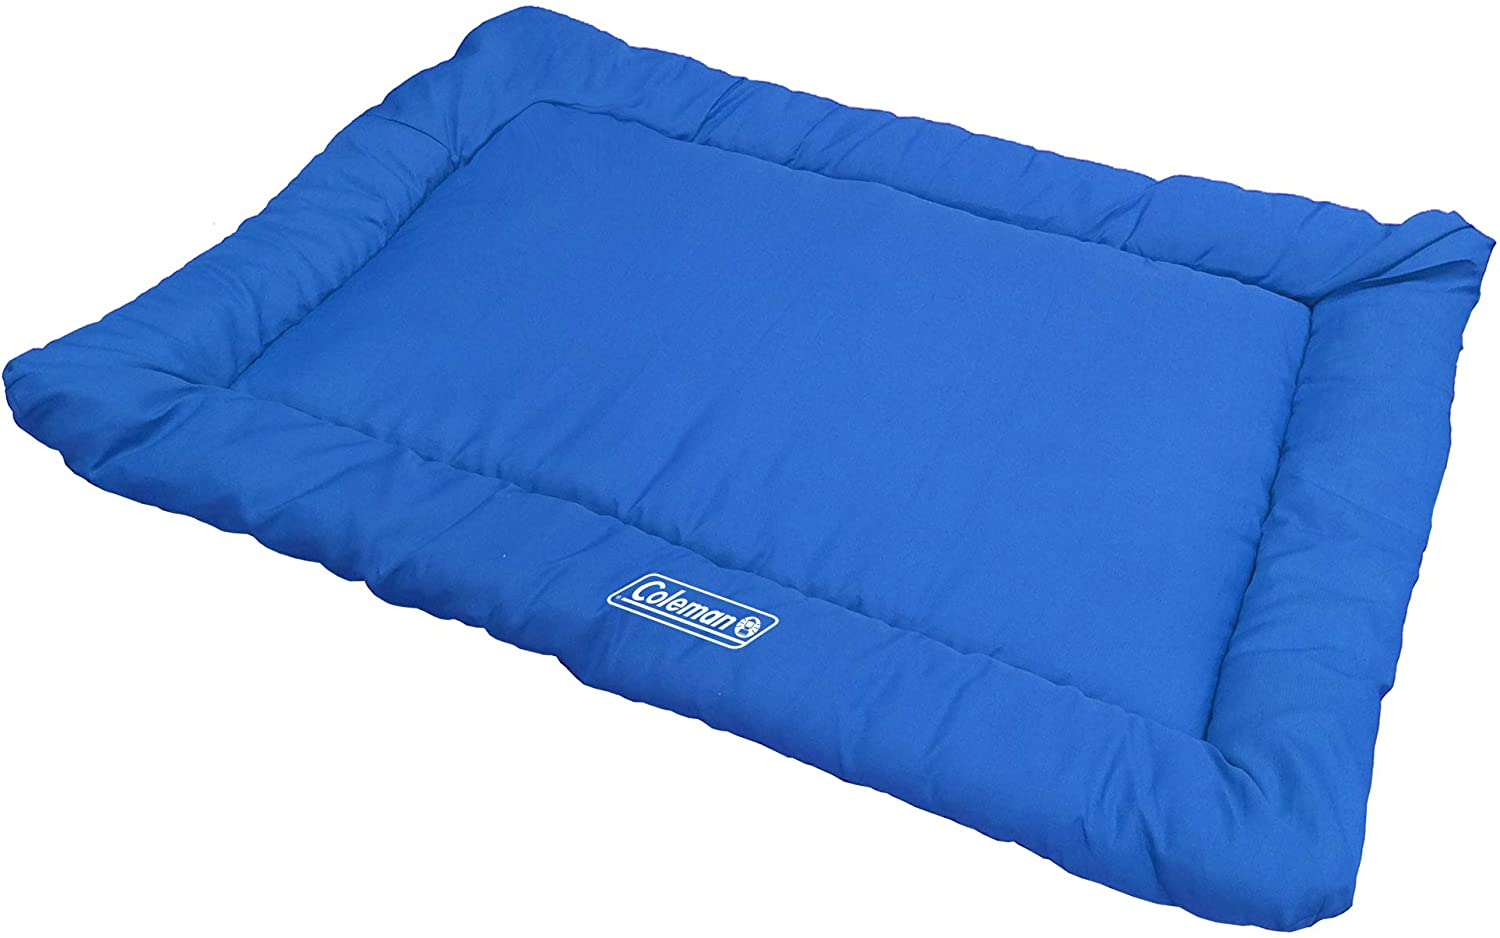 Coleman Large Dog Bed for Travel, Roll Up Foldable Packable Pet Mat Travel Beds